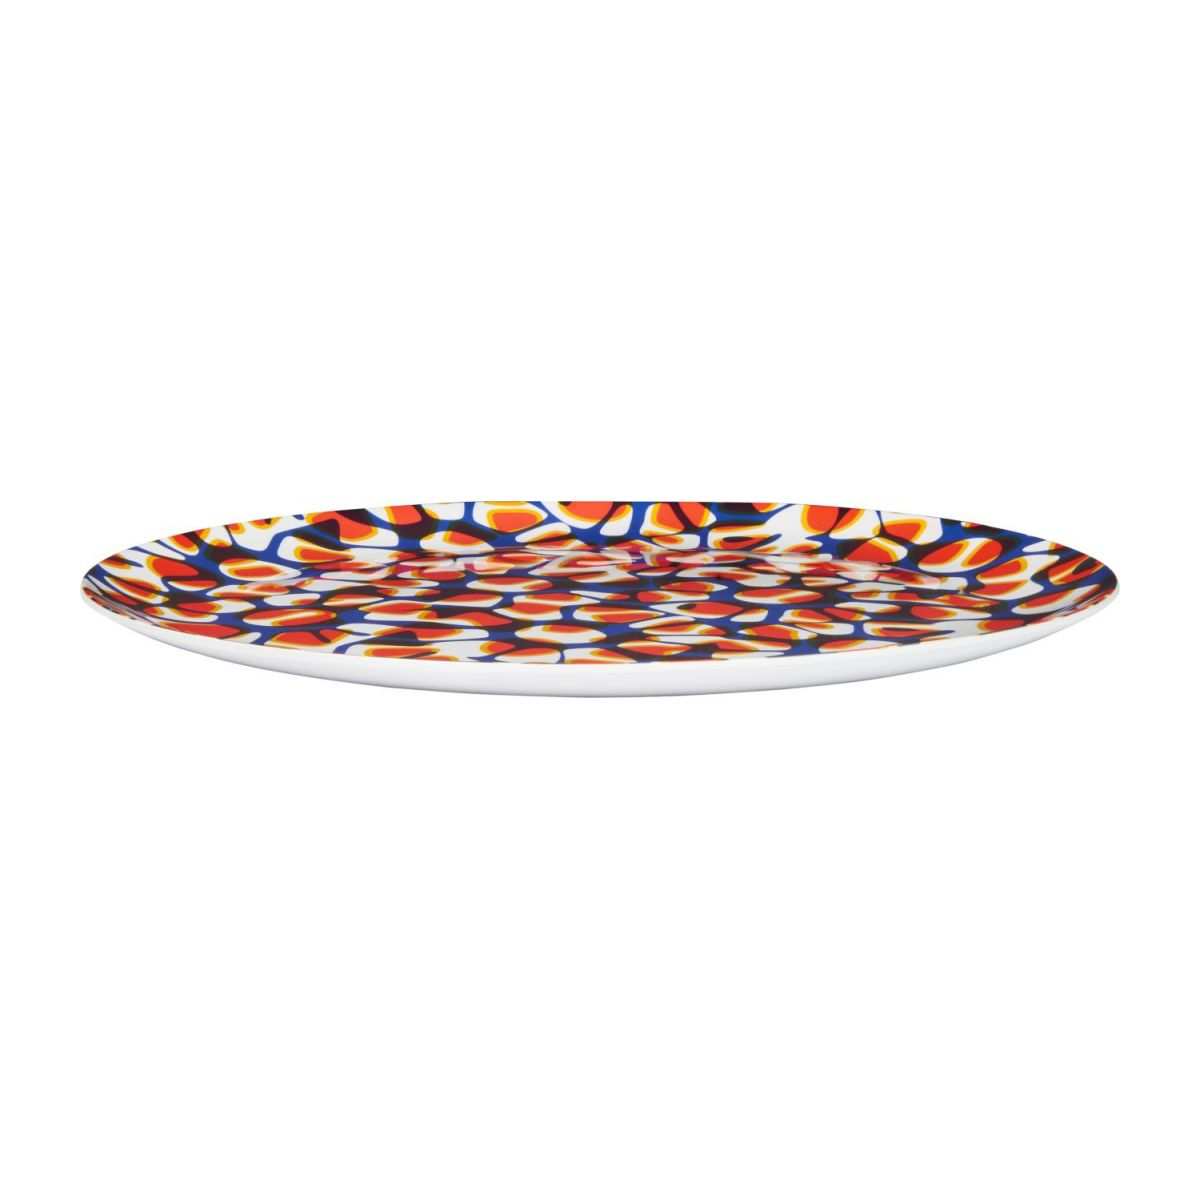 Tray made of melamine 38cm, with patterns n°1